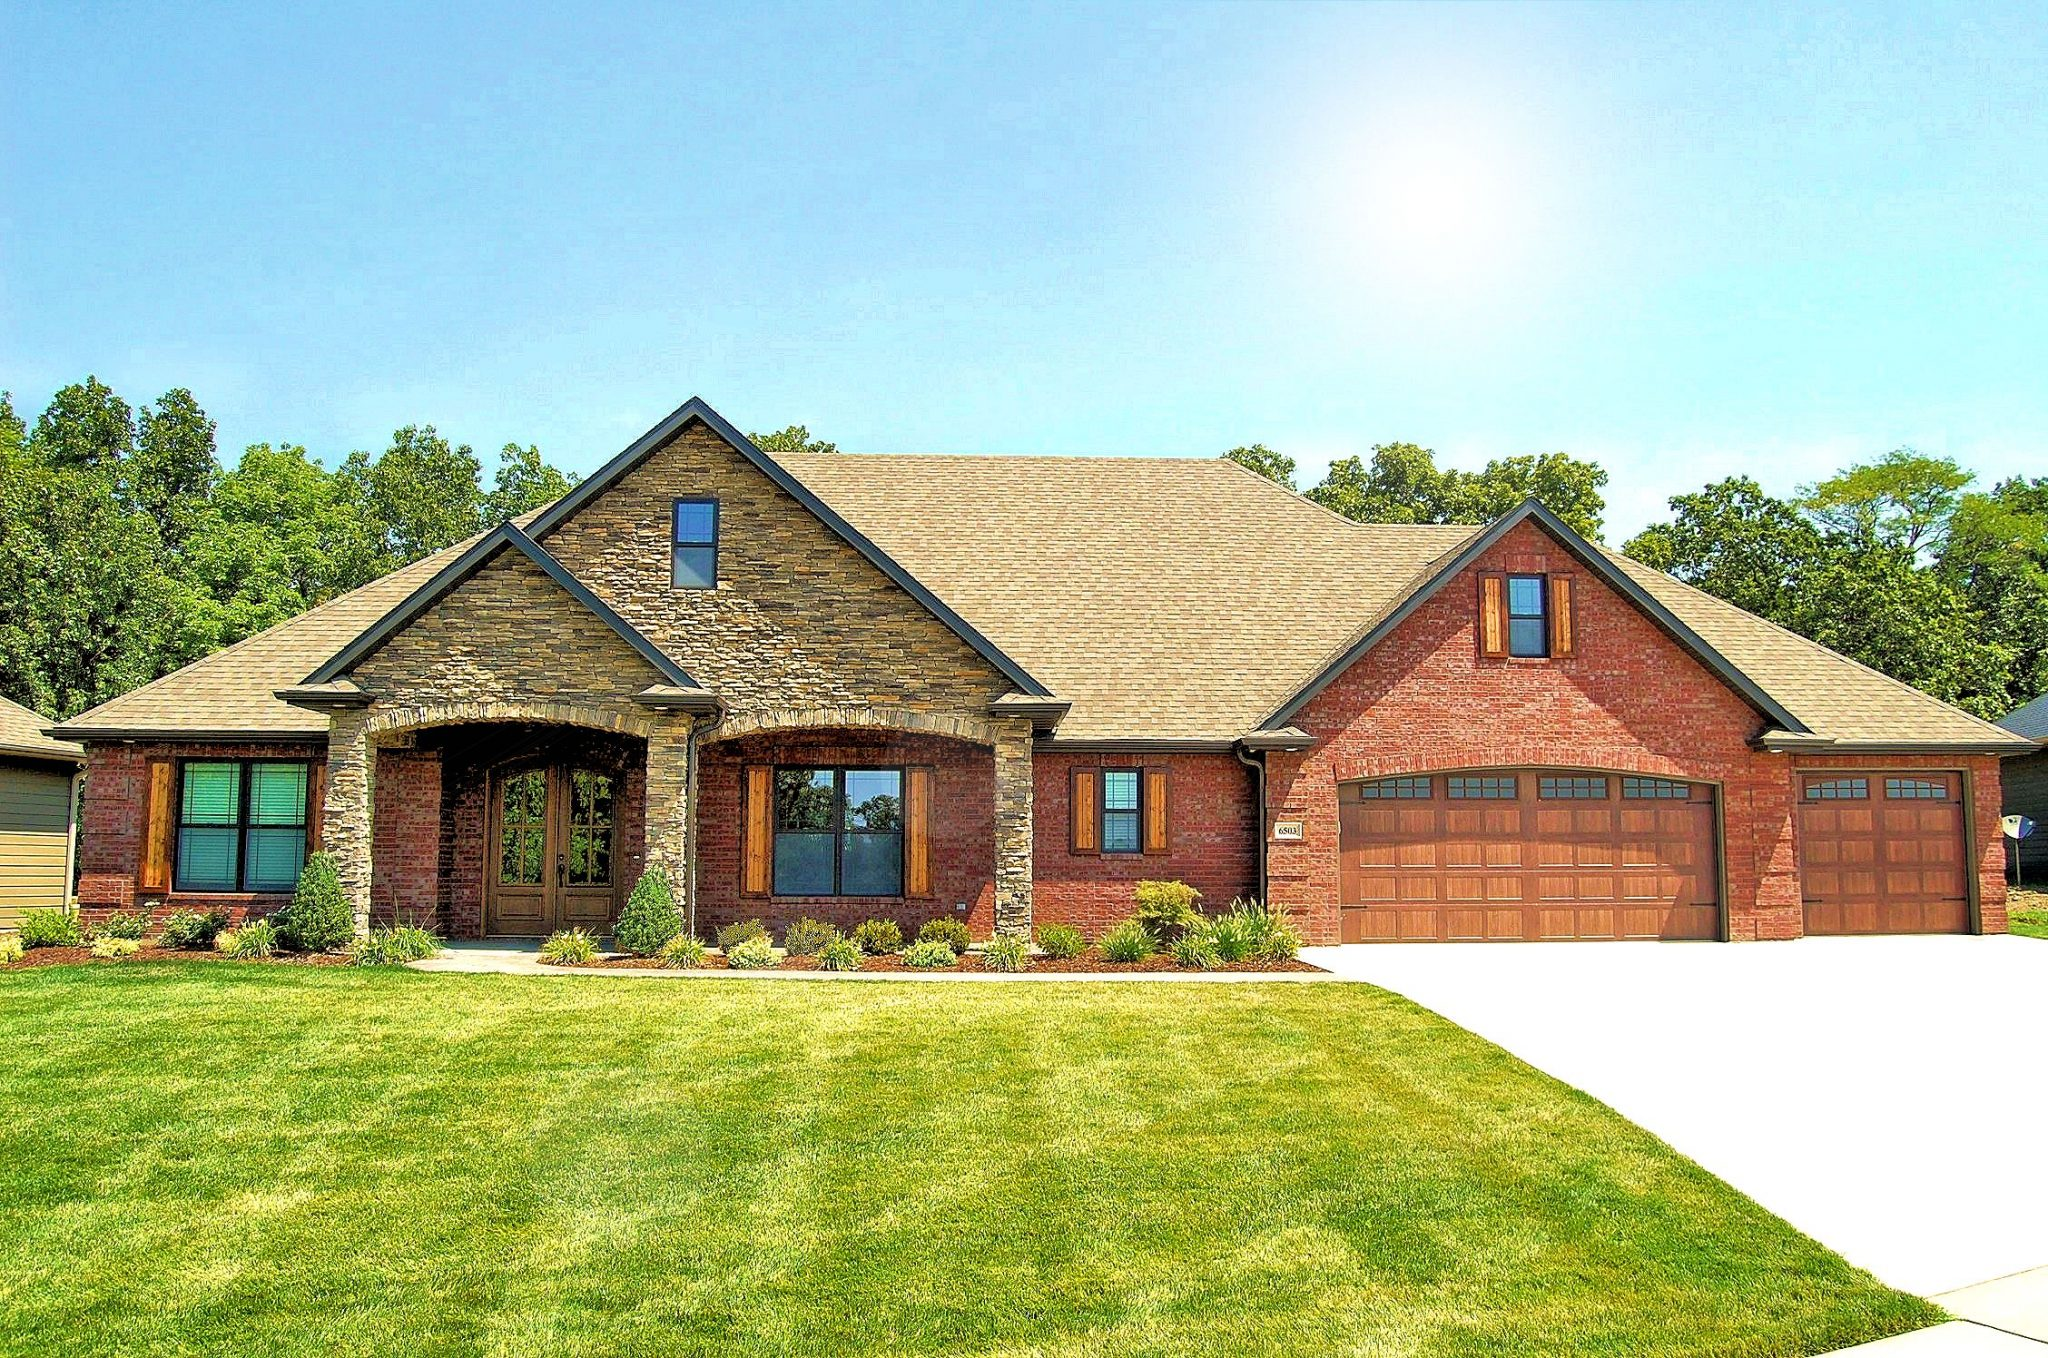 Custom Home with a Three Car Garage in Columbia, Mo